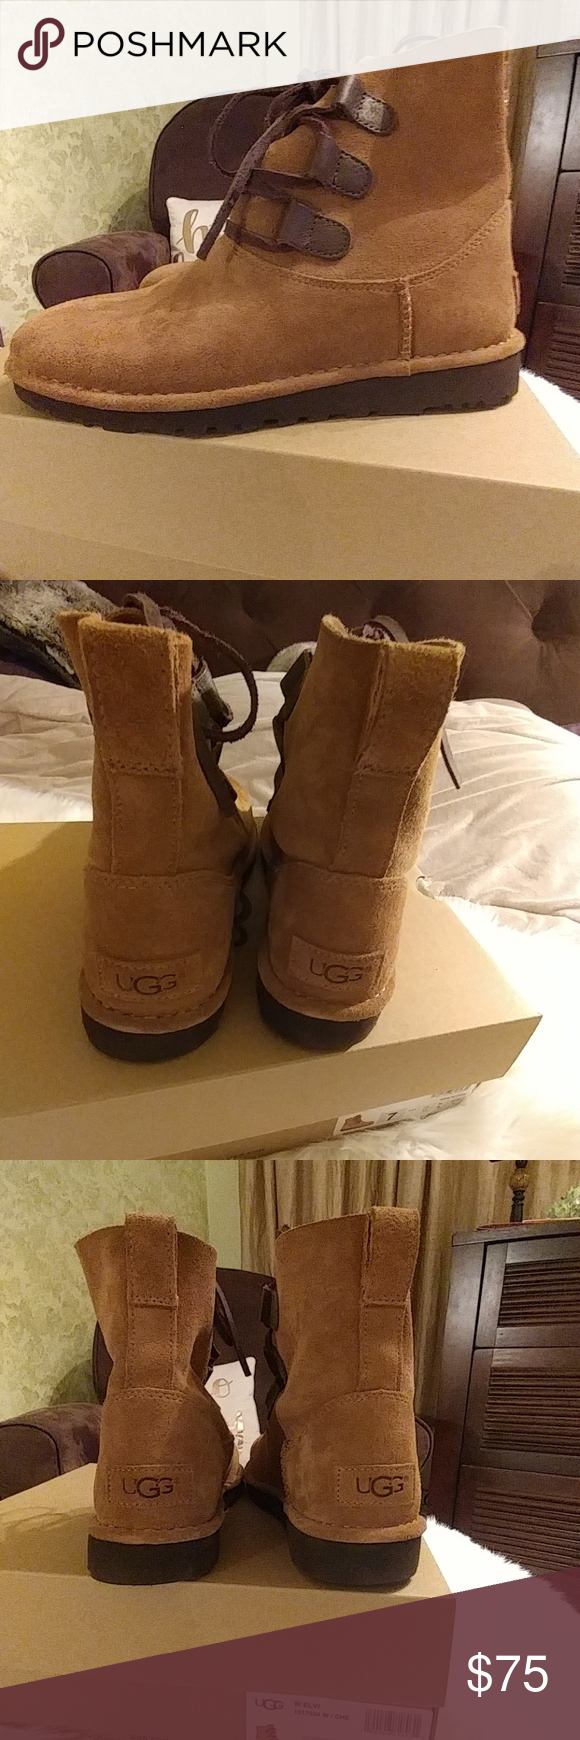 ec642498520 UGG Elvi Ankle Boots NWOT UGG Elvi Ankle Boots Color is Chestnut ...